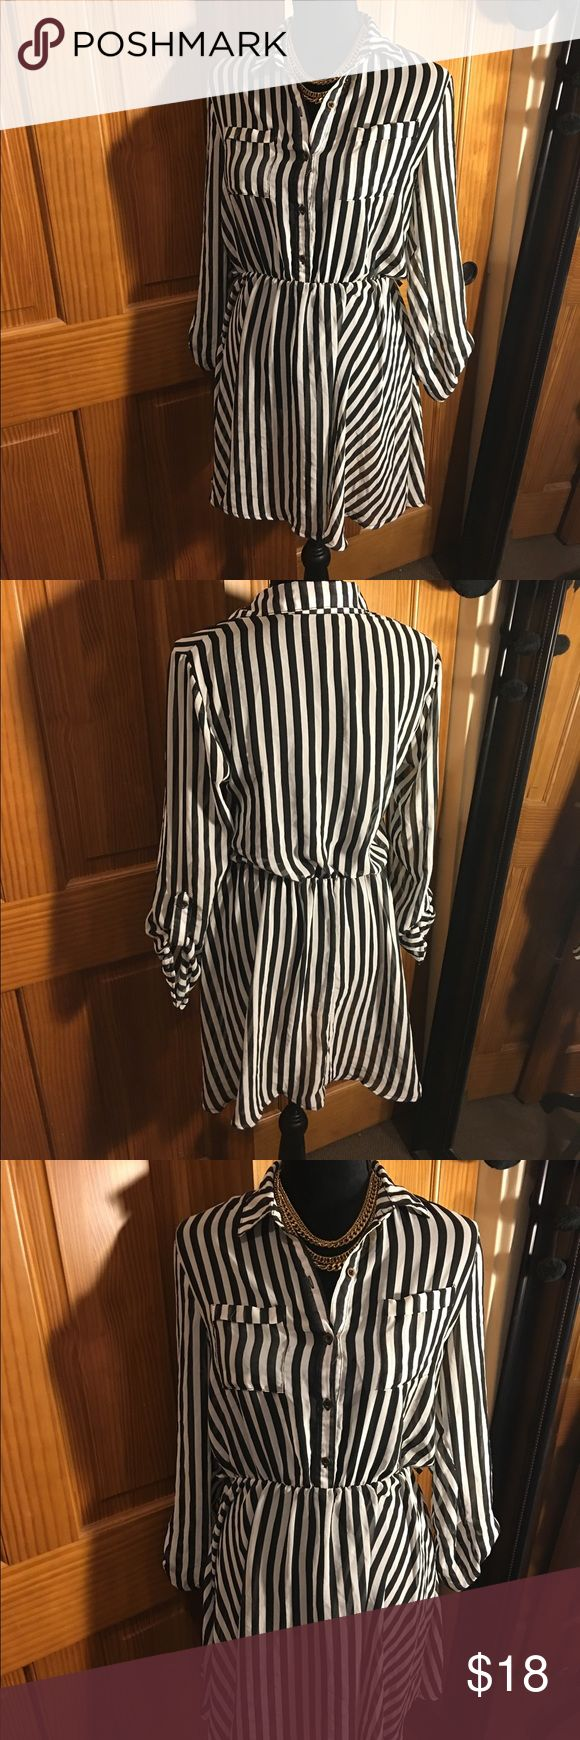 Dress from Windsor Black and white stripped dress from Windsor, size M. Missing the belt but any belt or no belt will look just as good. The dress is kind of see though, you would need to wear something black under. Material is thin. You can wear to work or a function. Dresses Mini